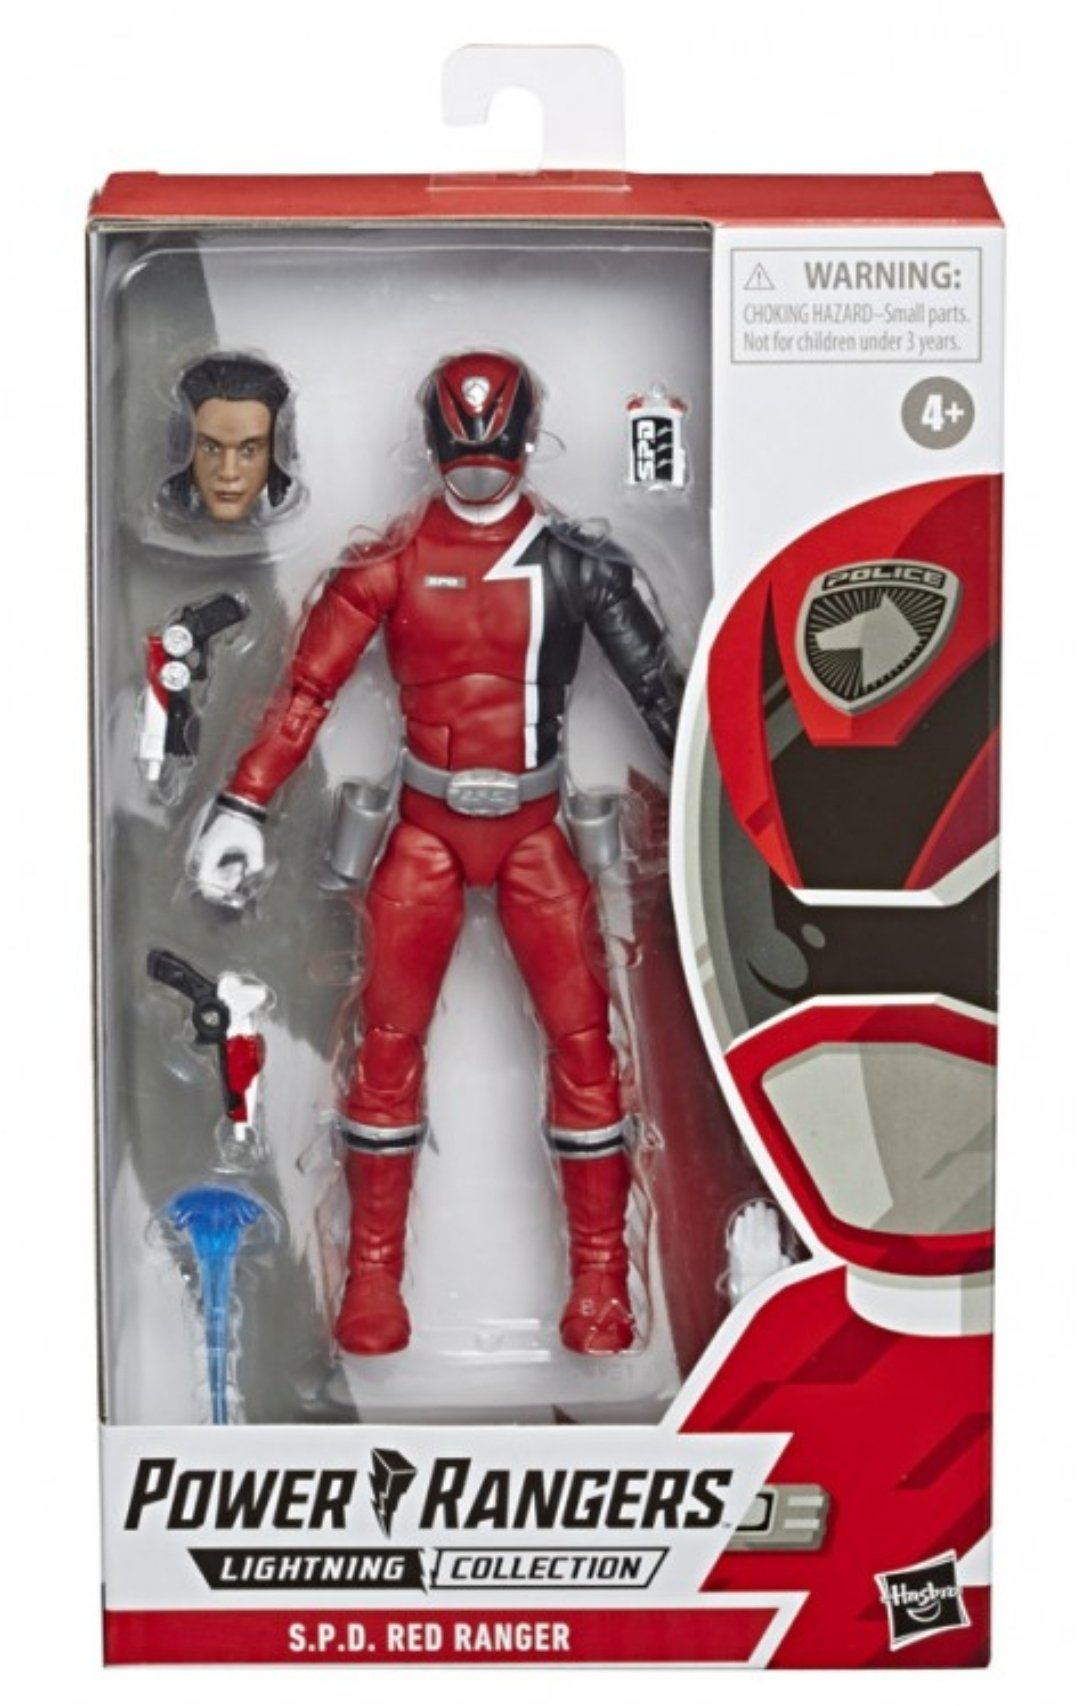 Power Rangers Lightning Collection Wave 4 Set of 4